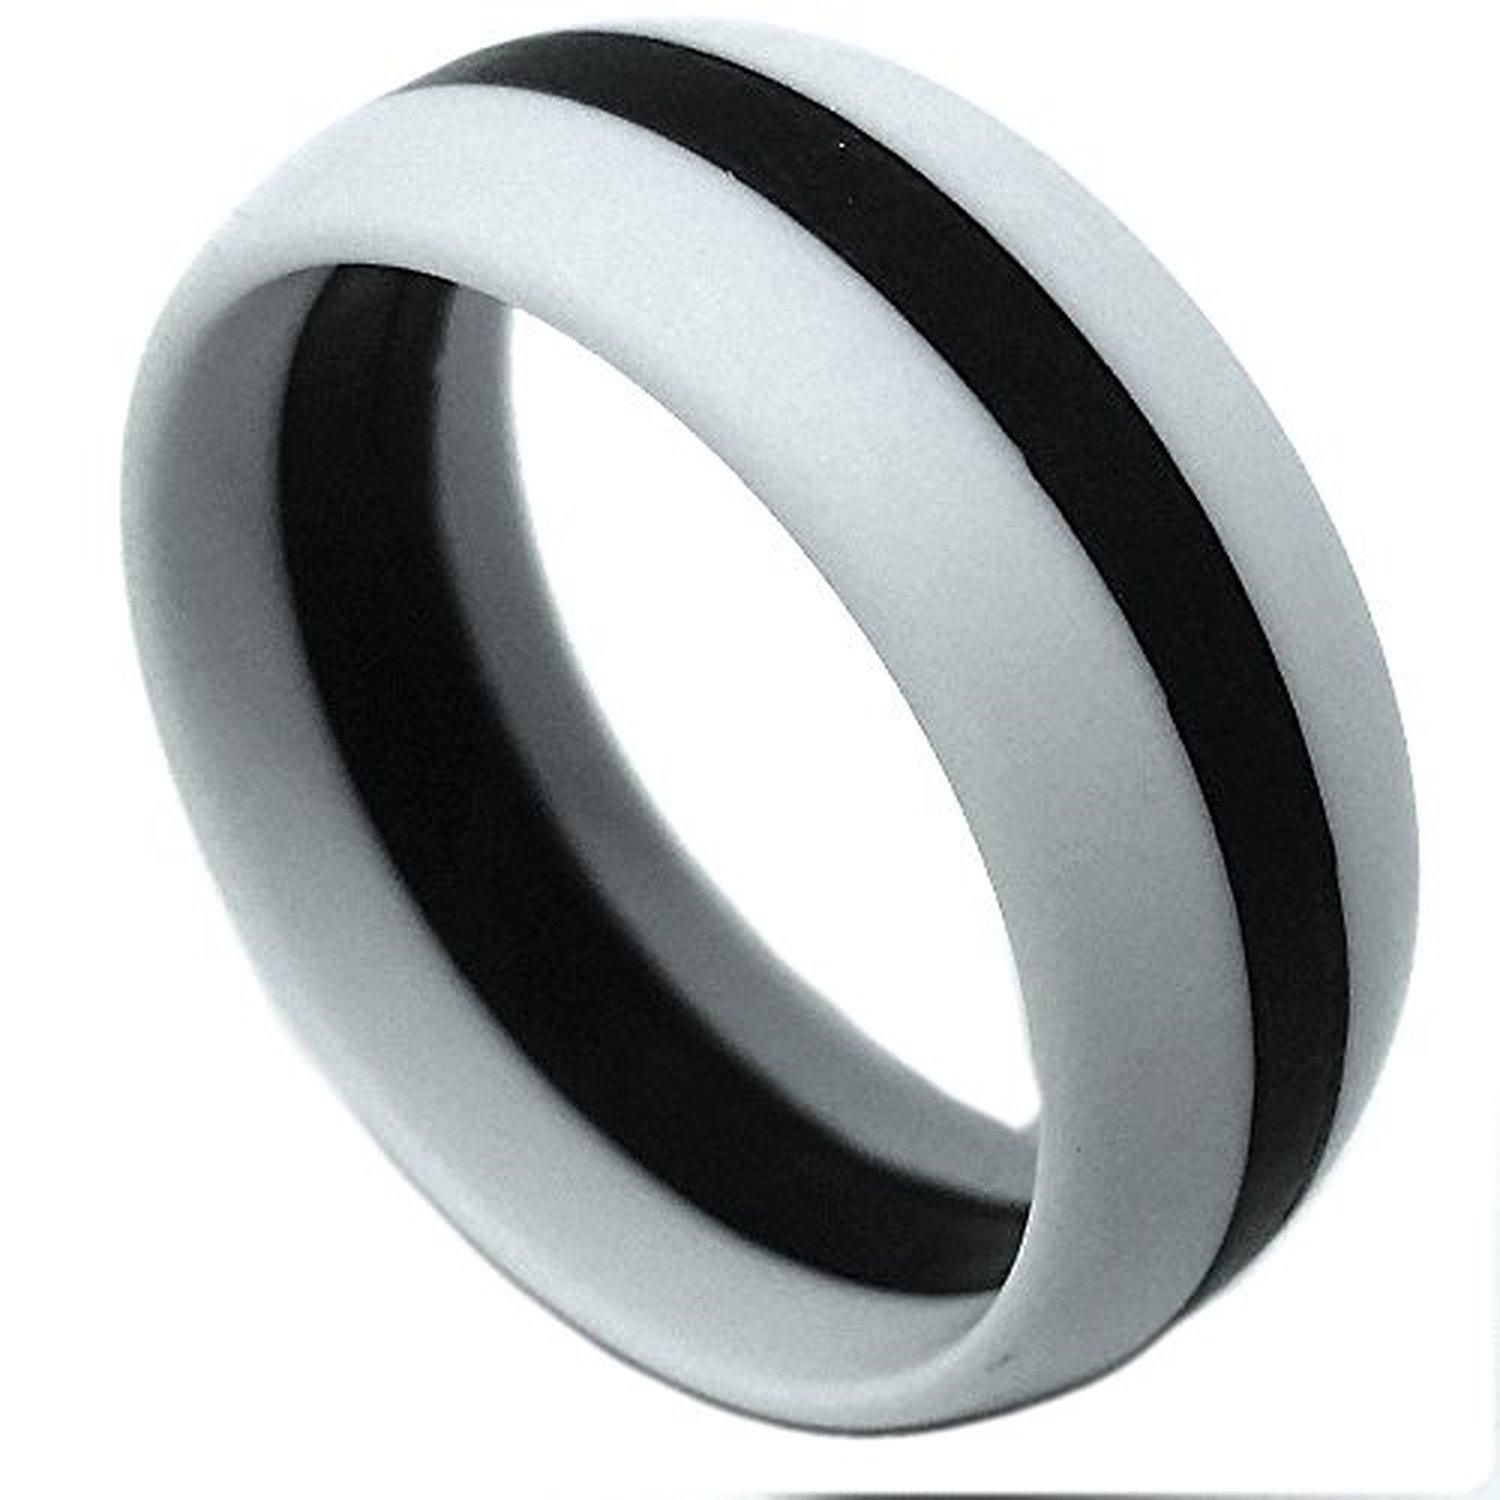 safe black rings wedding full flexible of bands new rubber store download in awesome active silicon size best sar